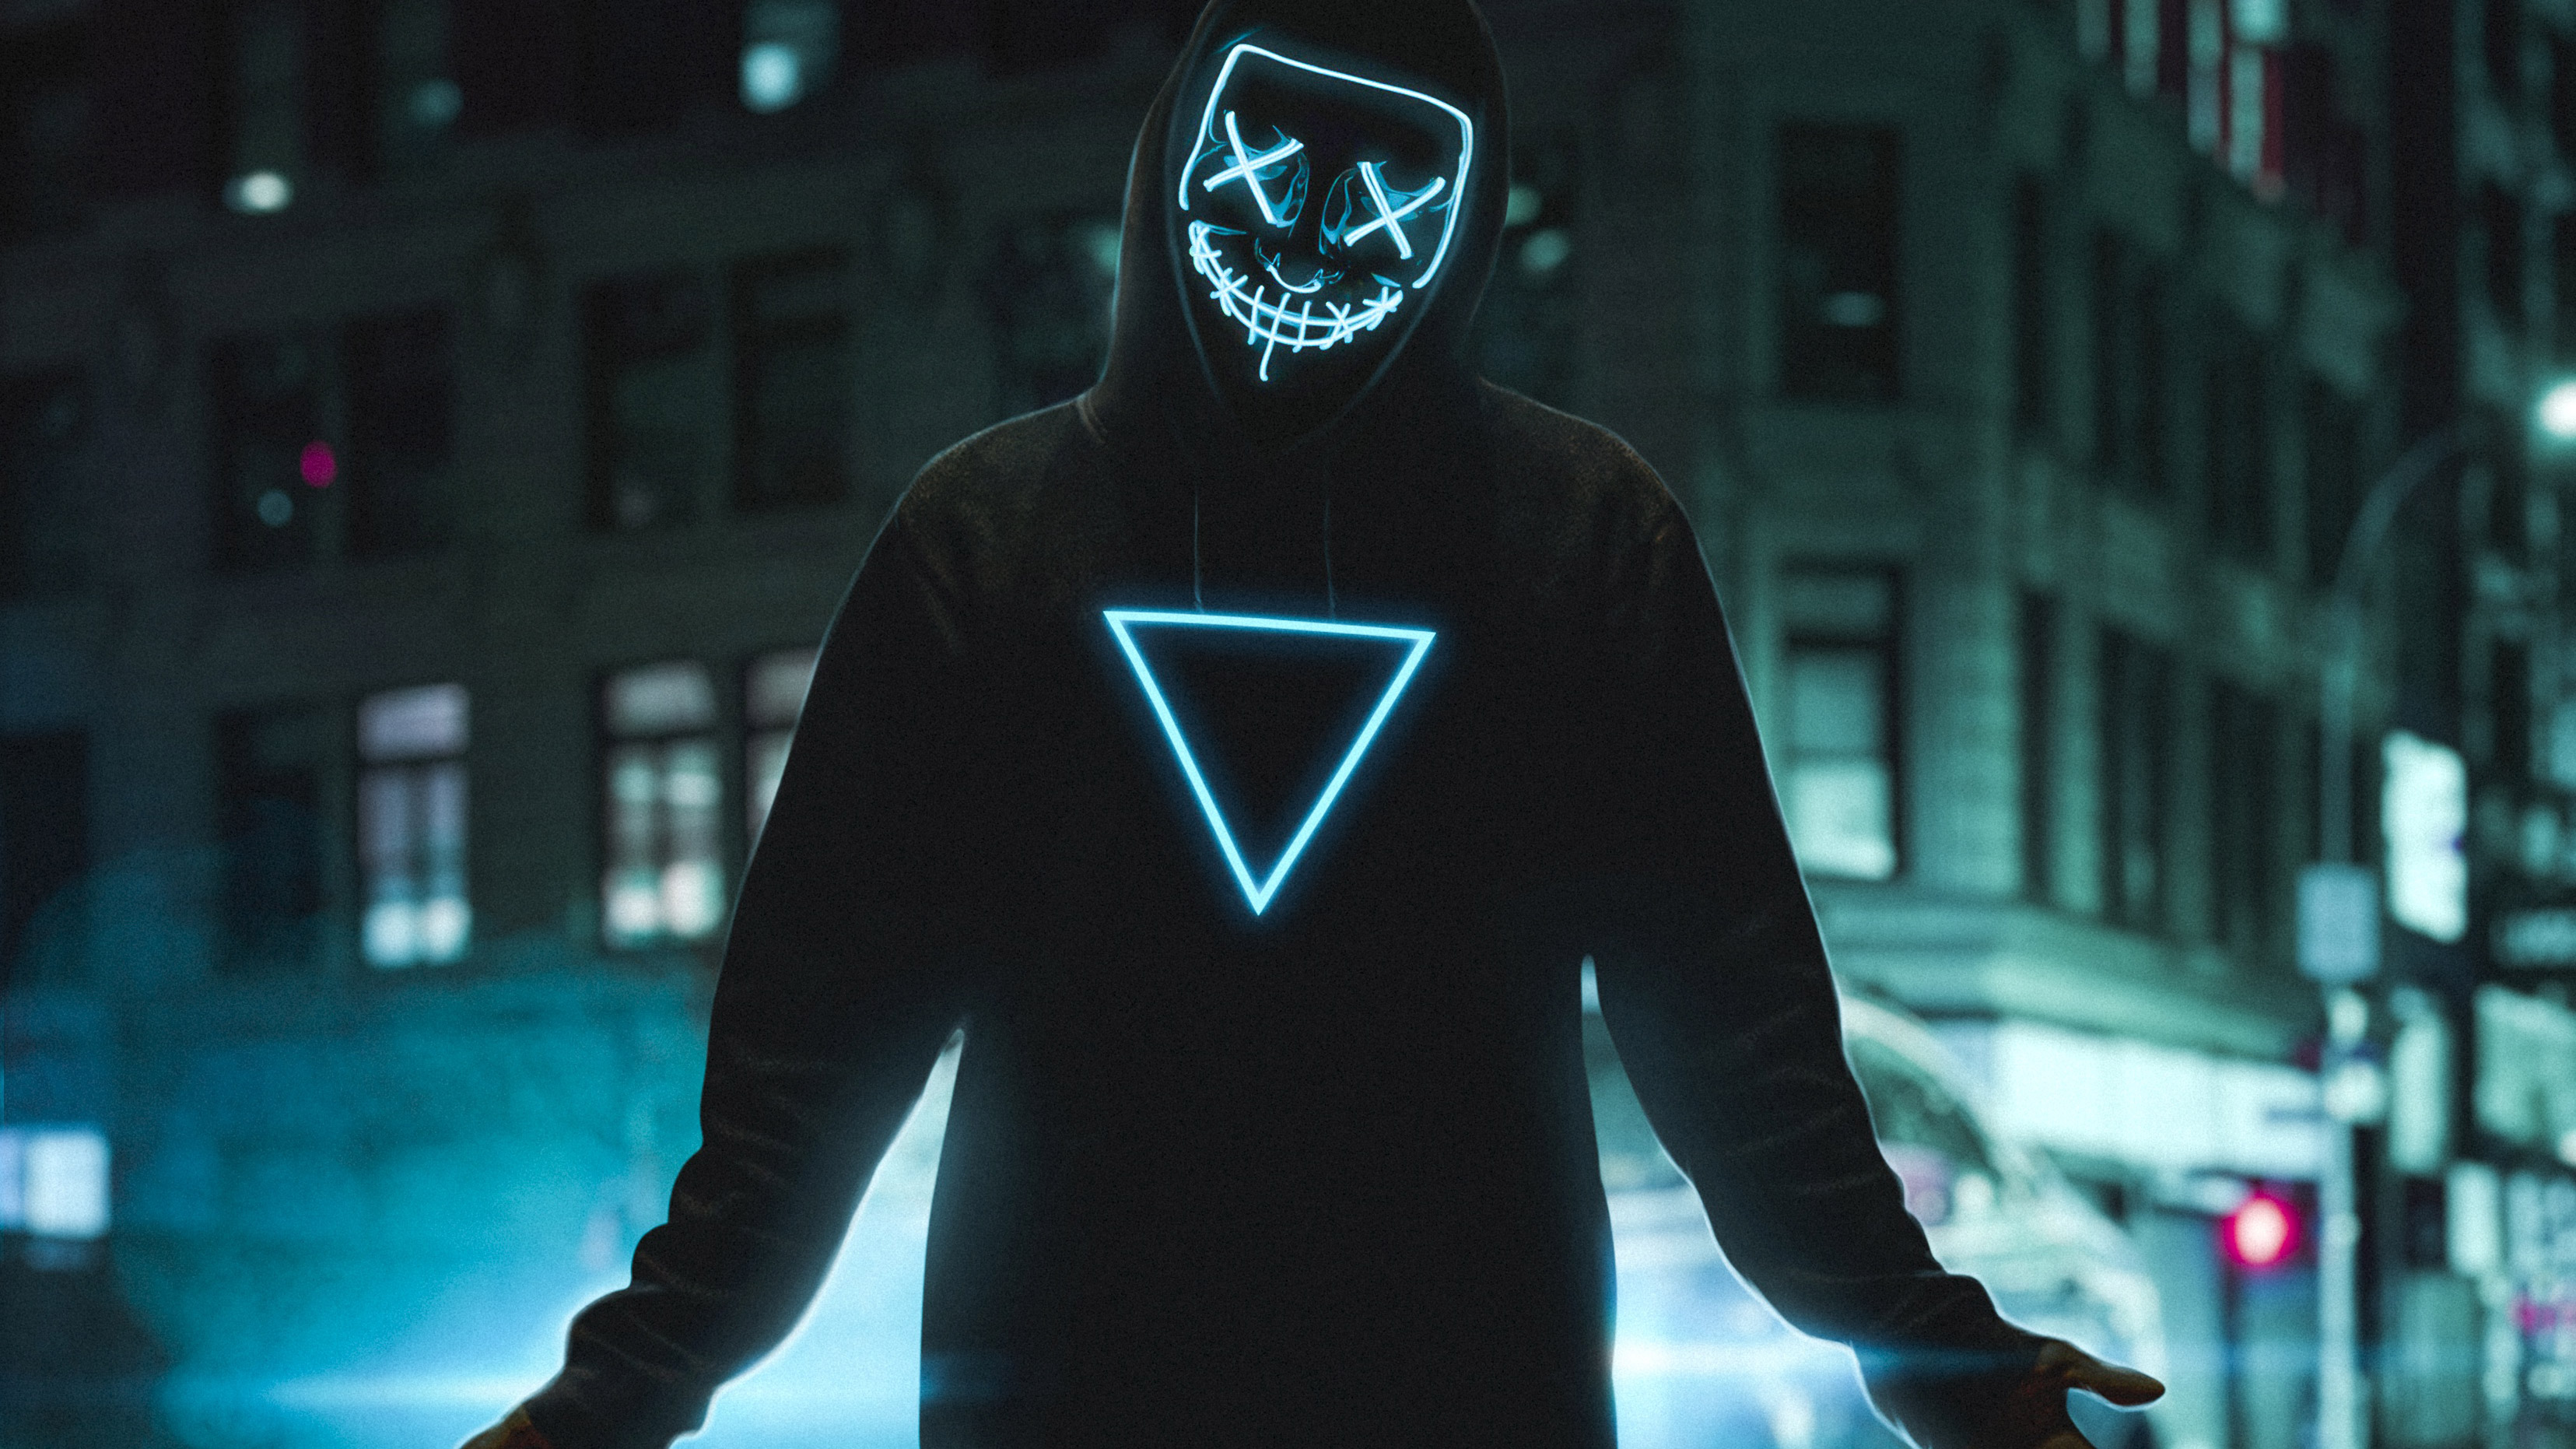 Neon Mask Boy 4k, HD Photography, 4k Wallpapers, Images ...